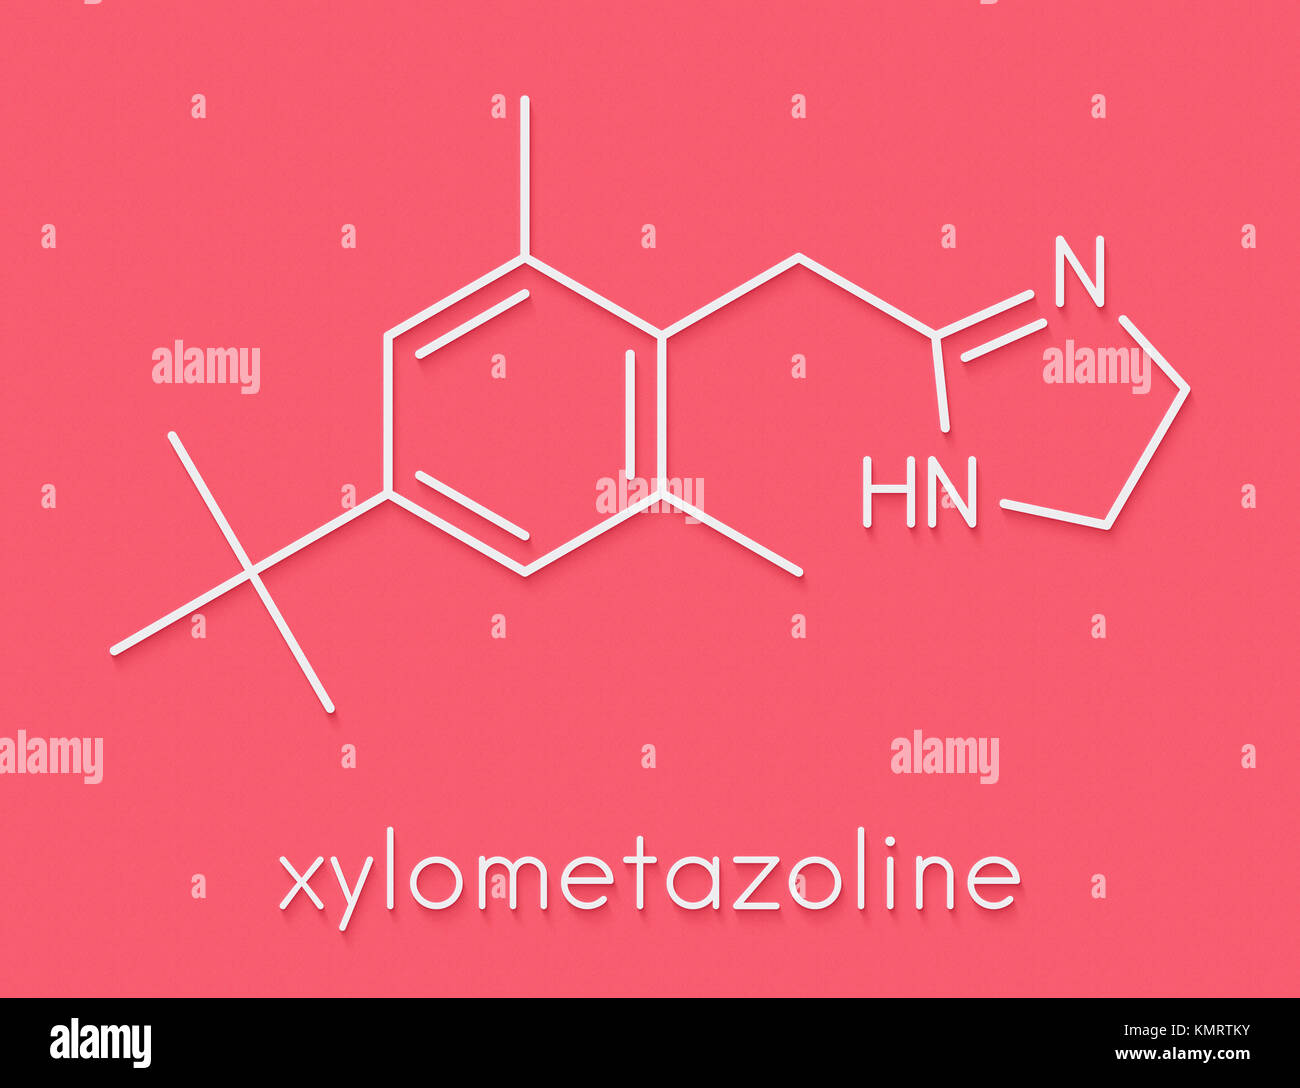 hight resolution of xylometazoline nasal decongestant molecule often used in nose spray and nose drops skeletal formula